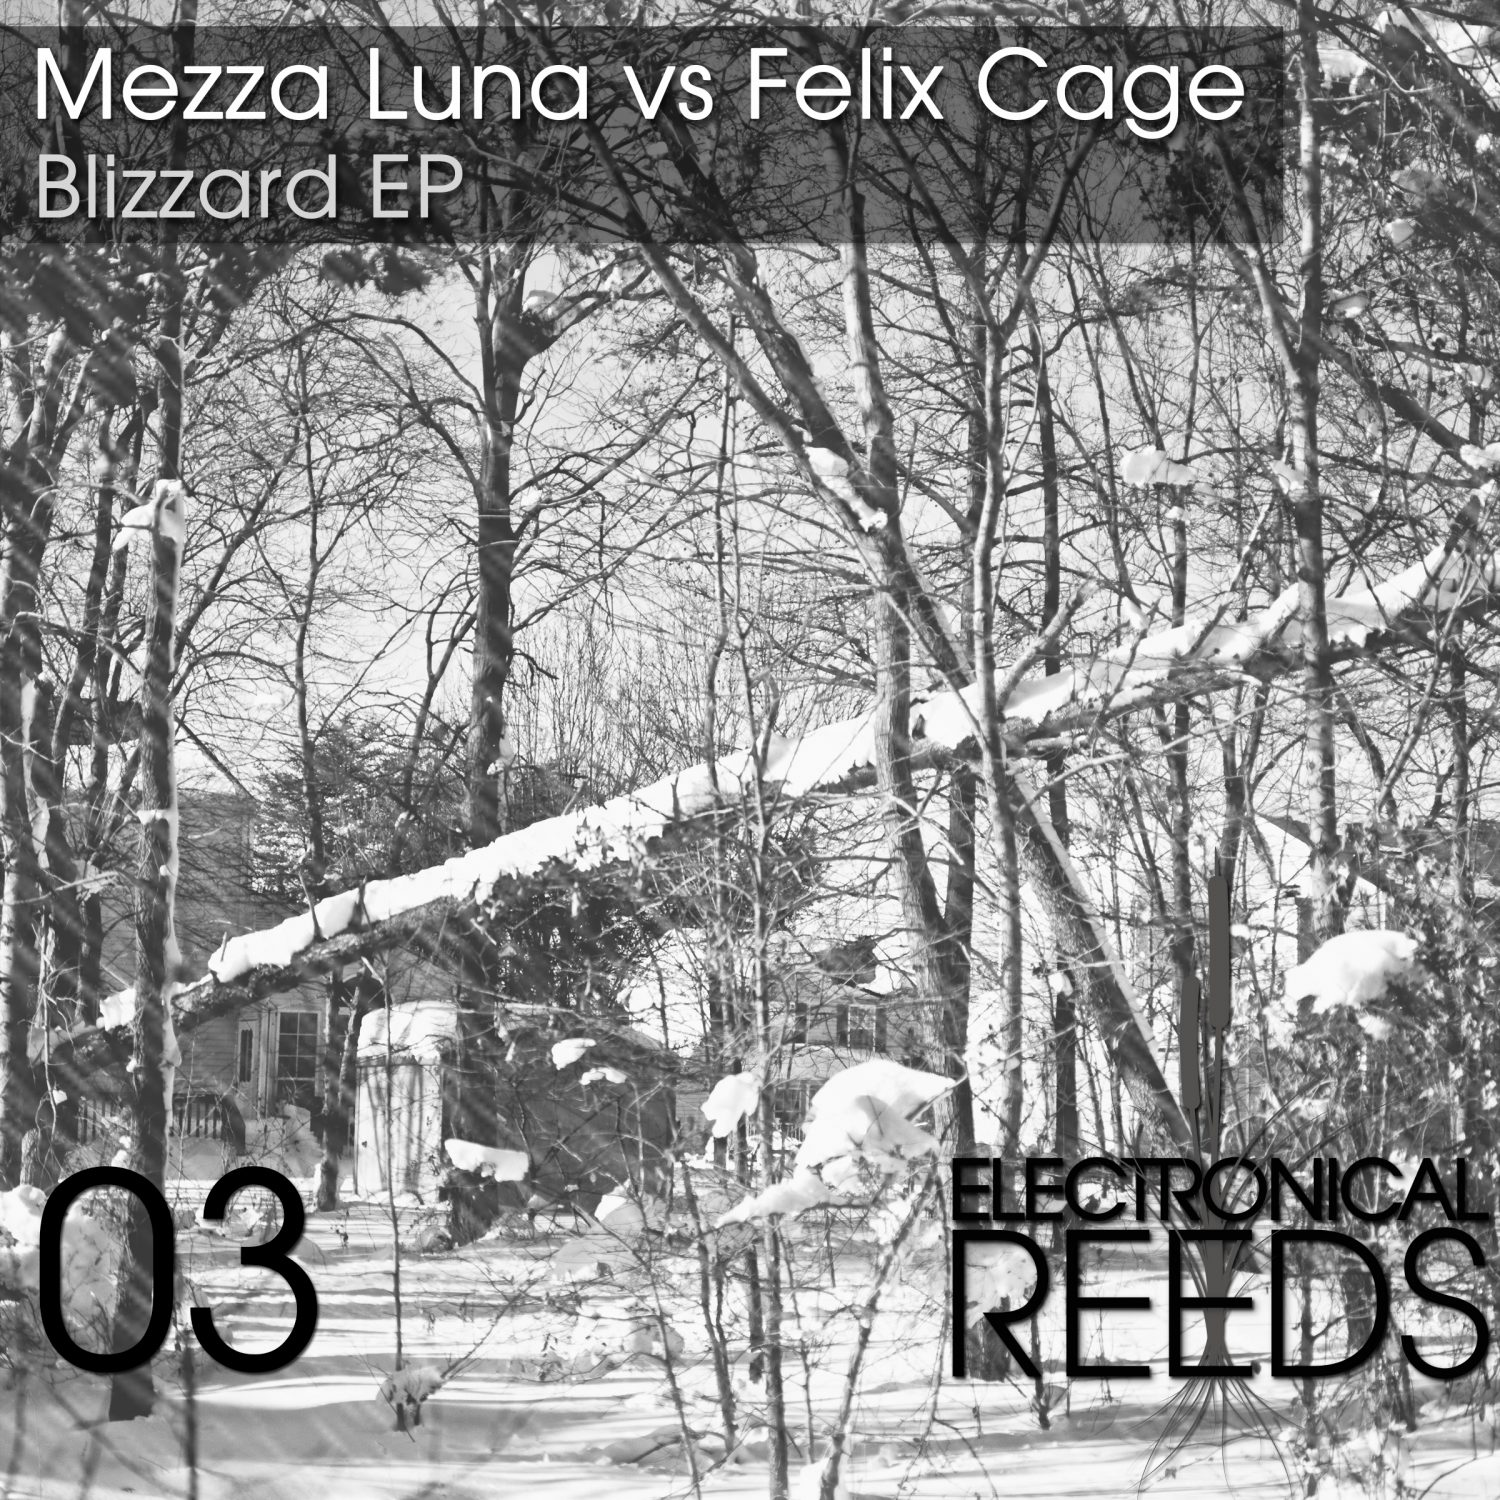 ER003 - Mezza Luna vs Felix Cage - Blizzard EP (incl. Tokyo Black Star & Pole Folder Remix) - Electronical Reeds